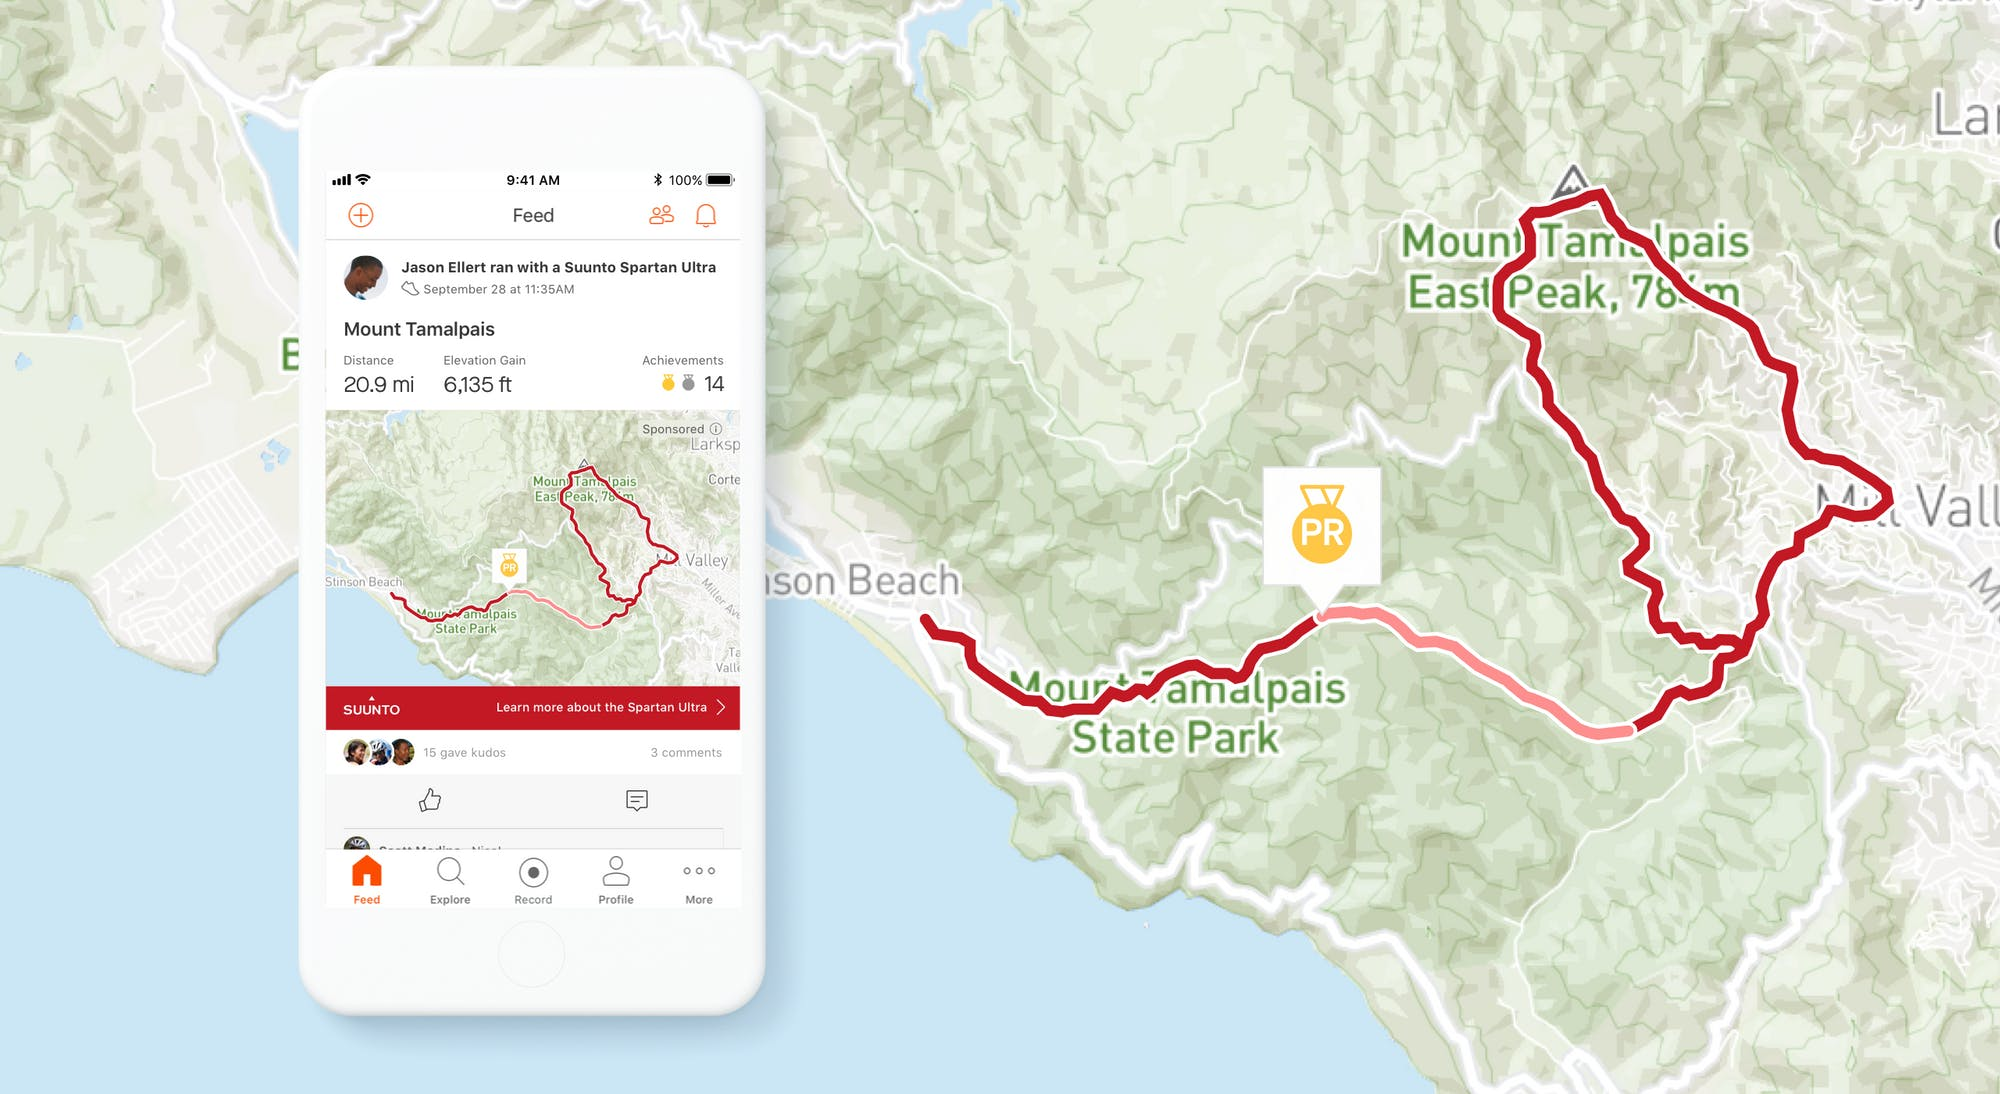 Track your cycling progress easily using Strava